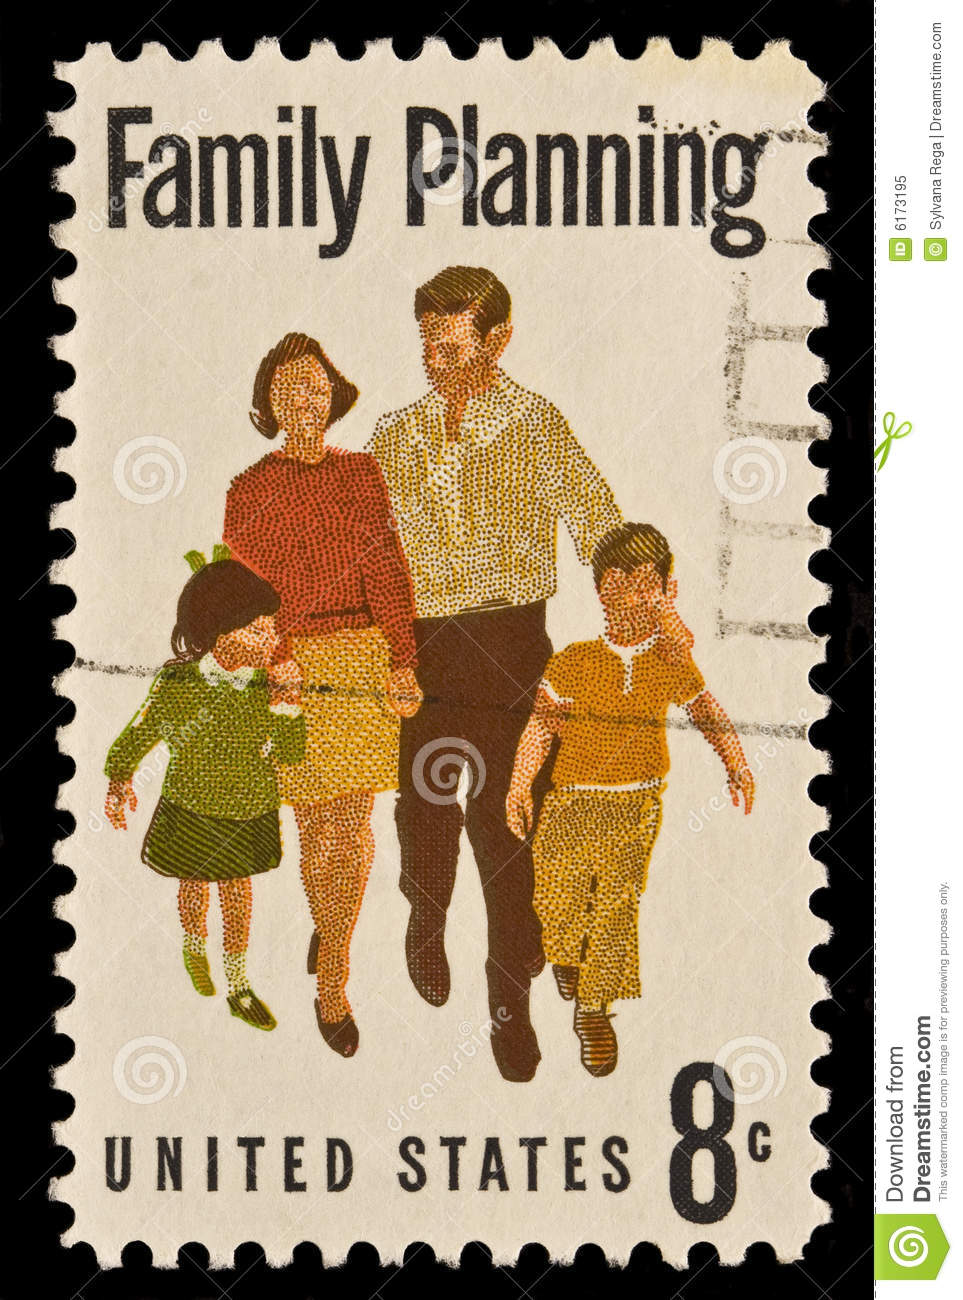 Family planning postal stamp royalty free stock photo Family planning com